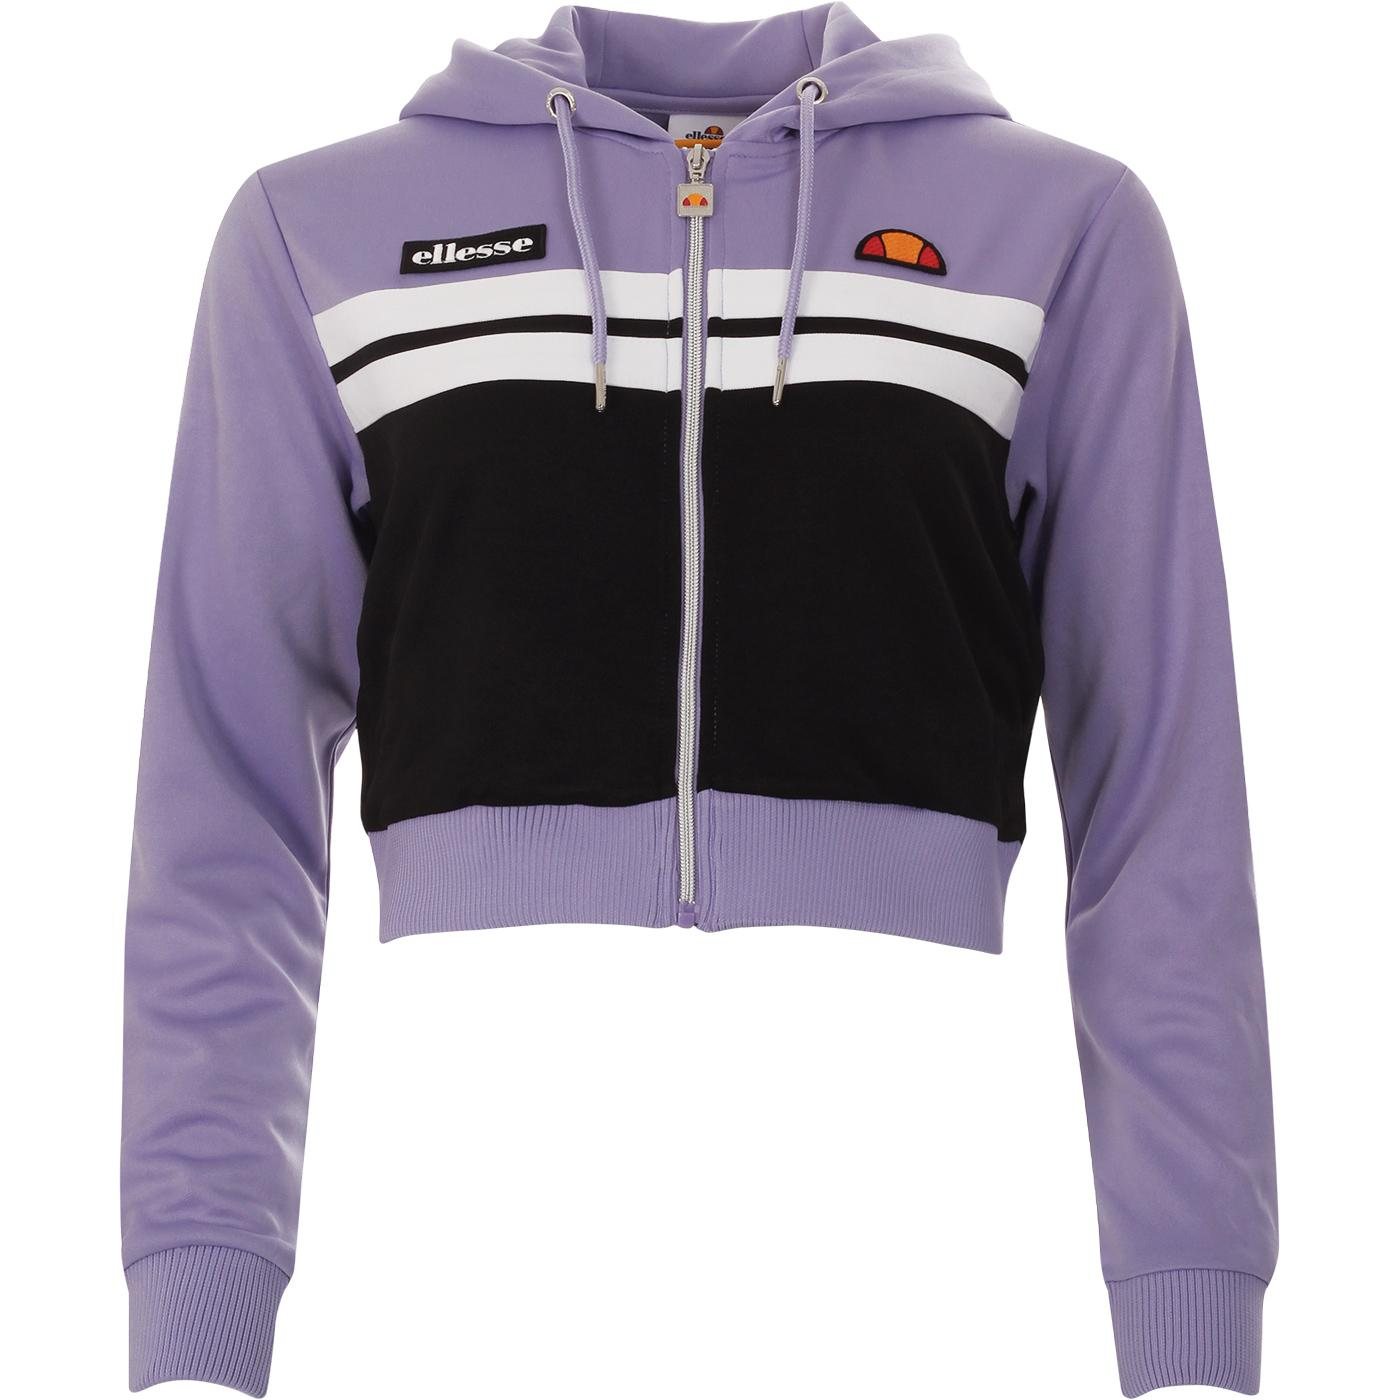 Bulito ELLESSE Women's Retro Crop Hooded Track Top